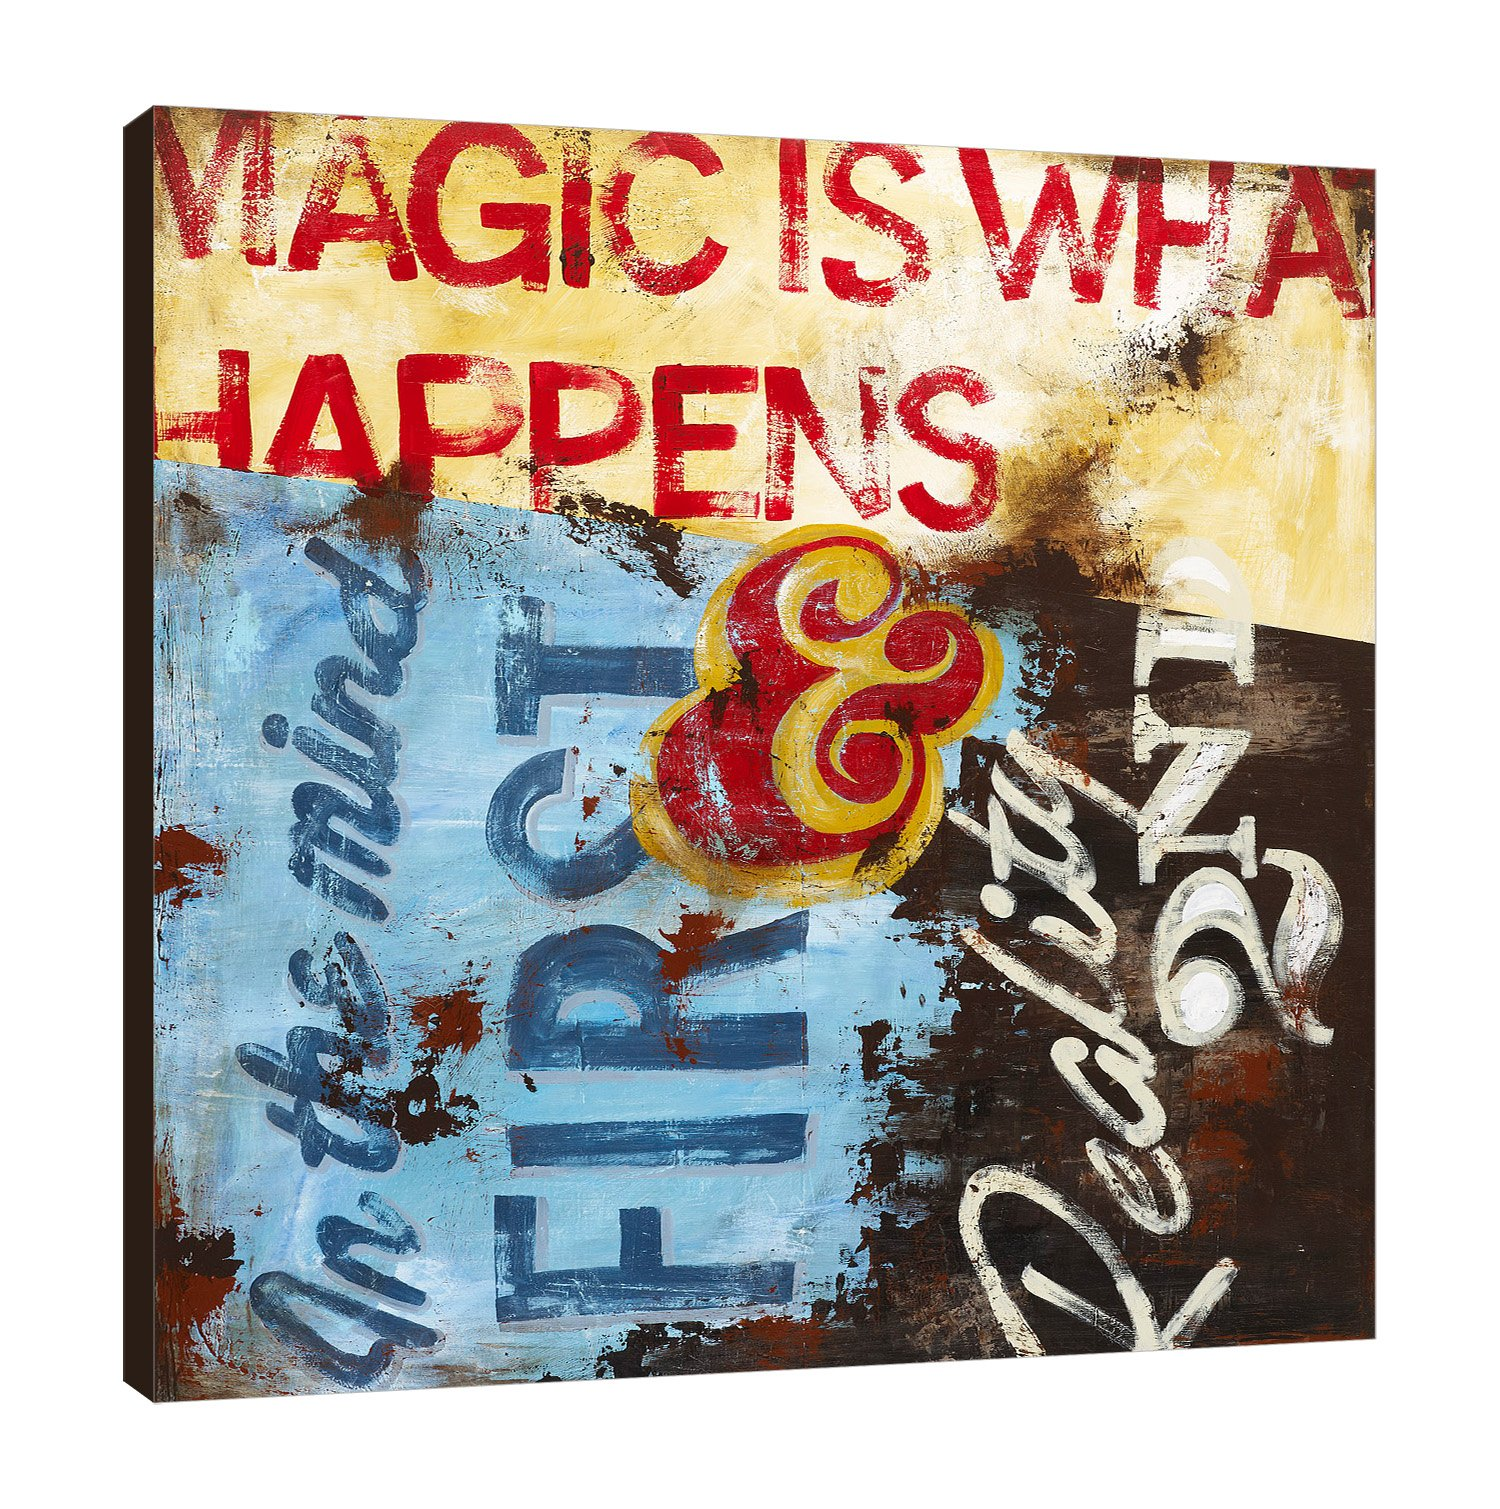 Rodney White SC0673636-RW Strategy for Everyday Sorcery Gallery Wrapped Canvas,,36x36x1.5 by Rodney White